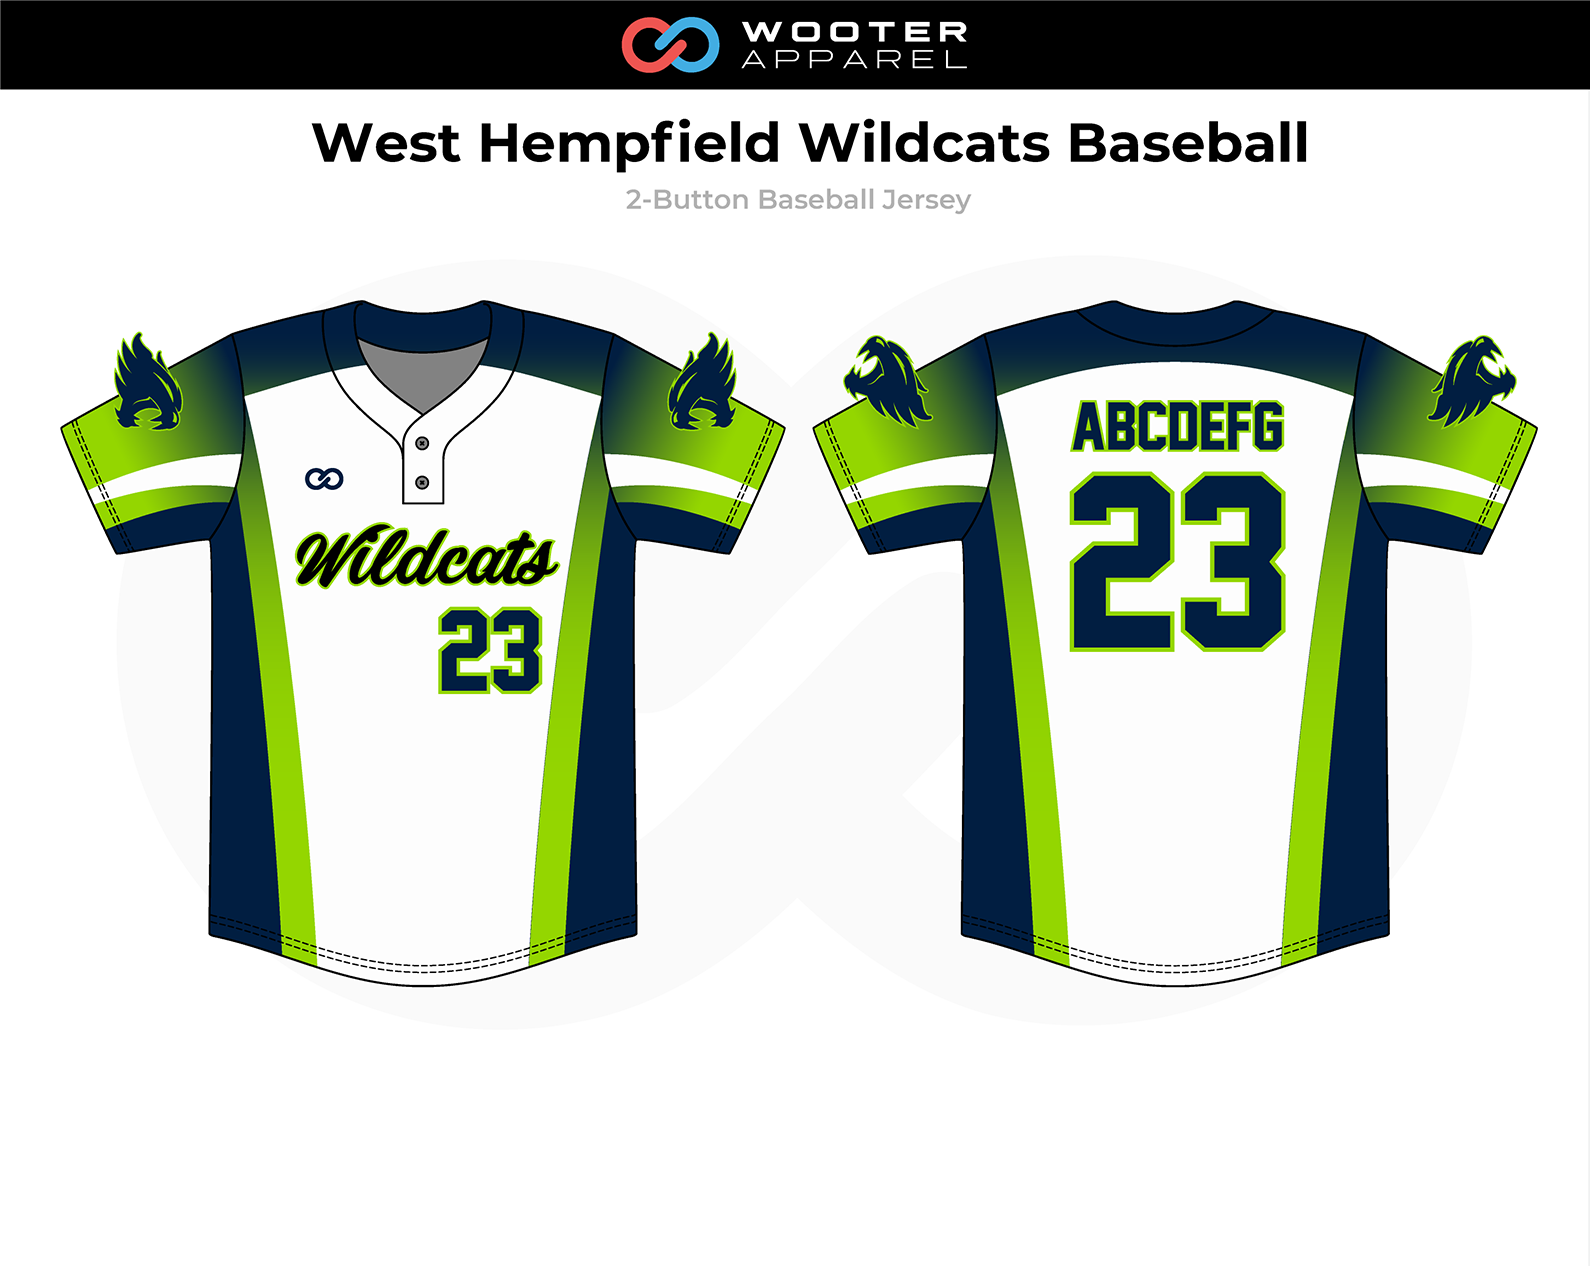 2018-11-06 West Hempfield Wildcats Baseball 2-Button Jersey.png